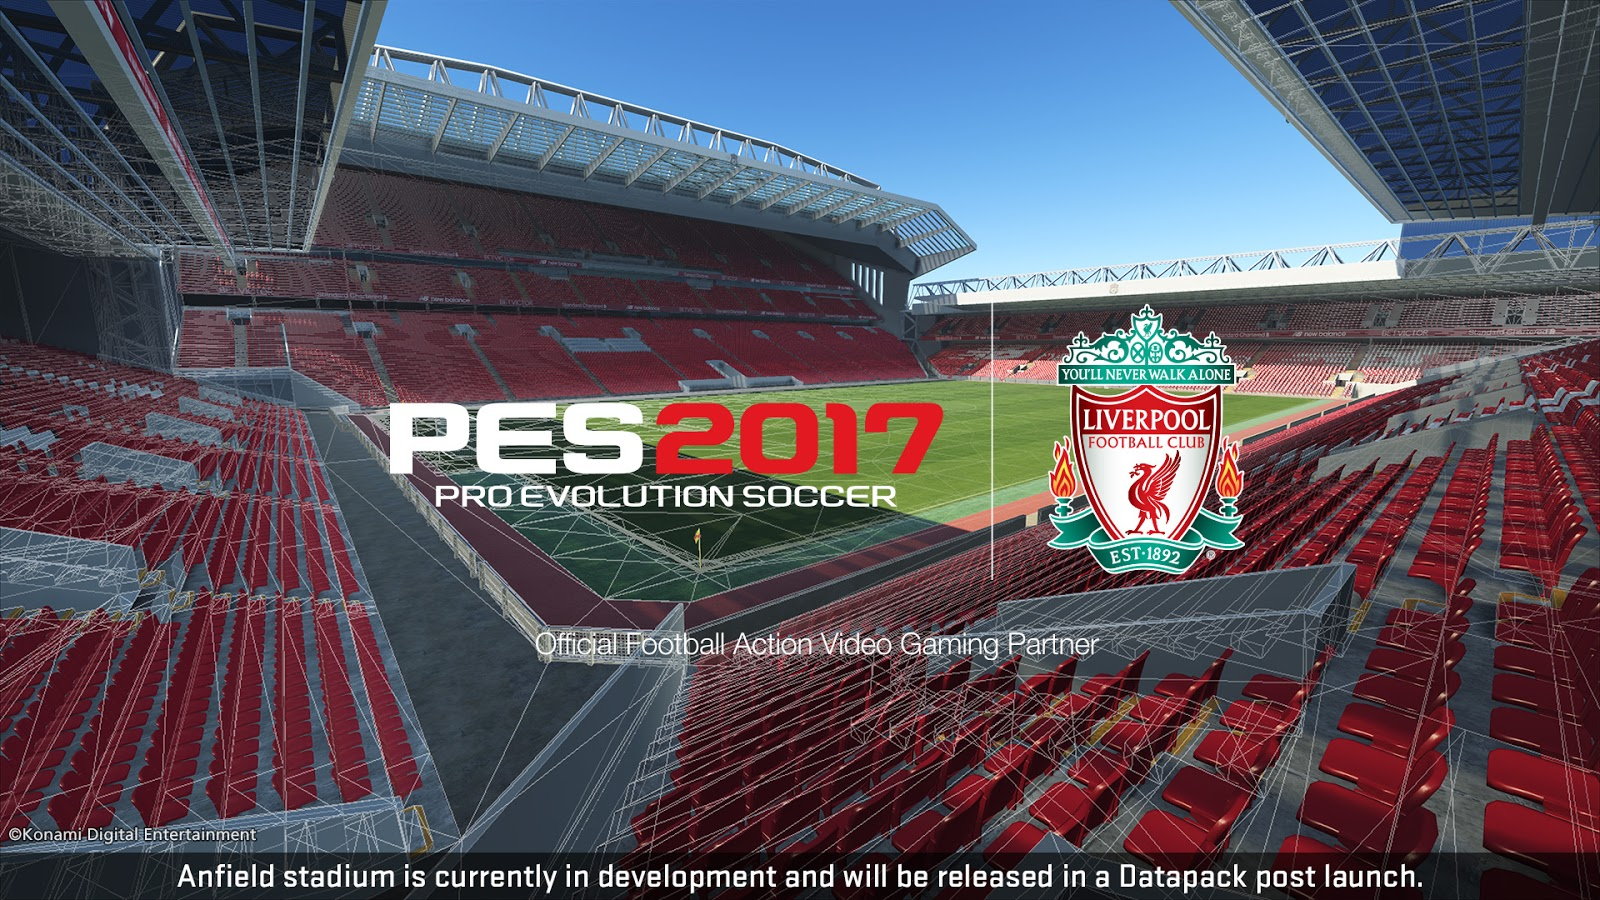 PES2017-LFC-Announcement-Anfield-01.jpg